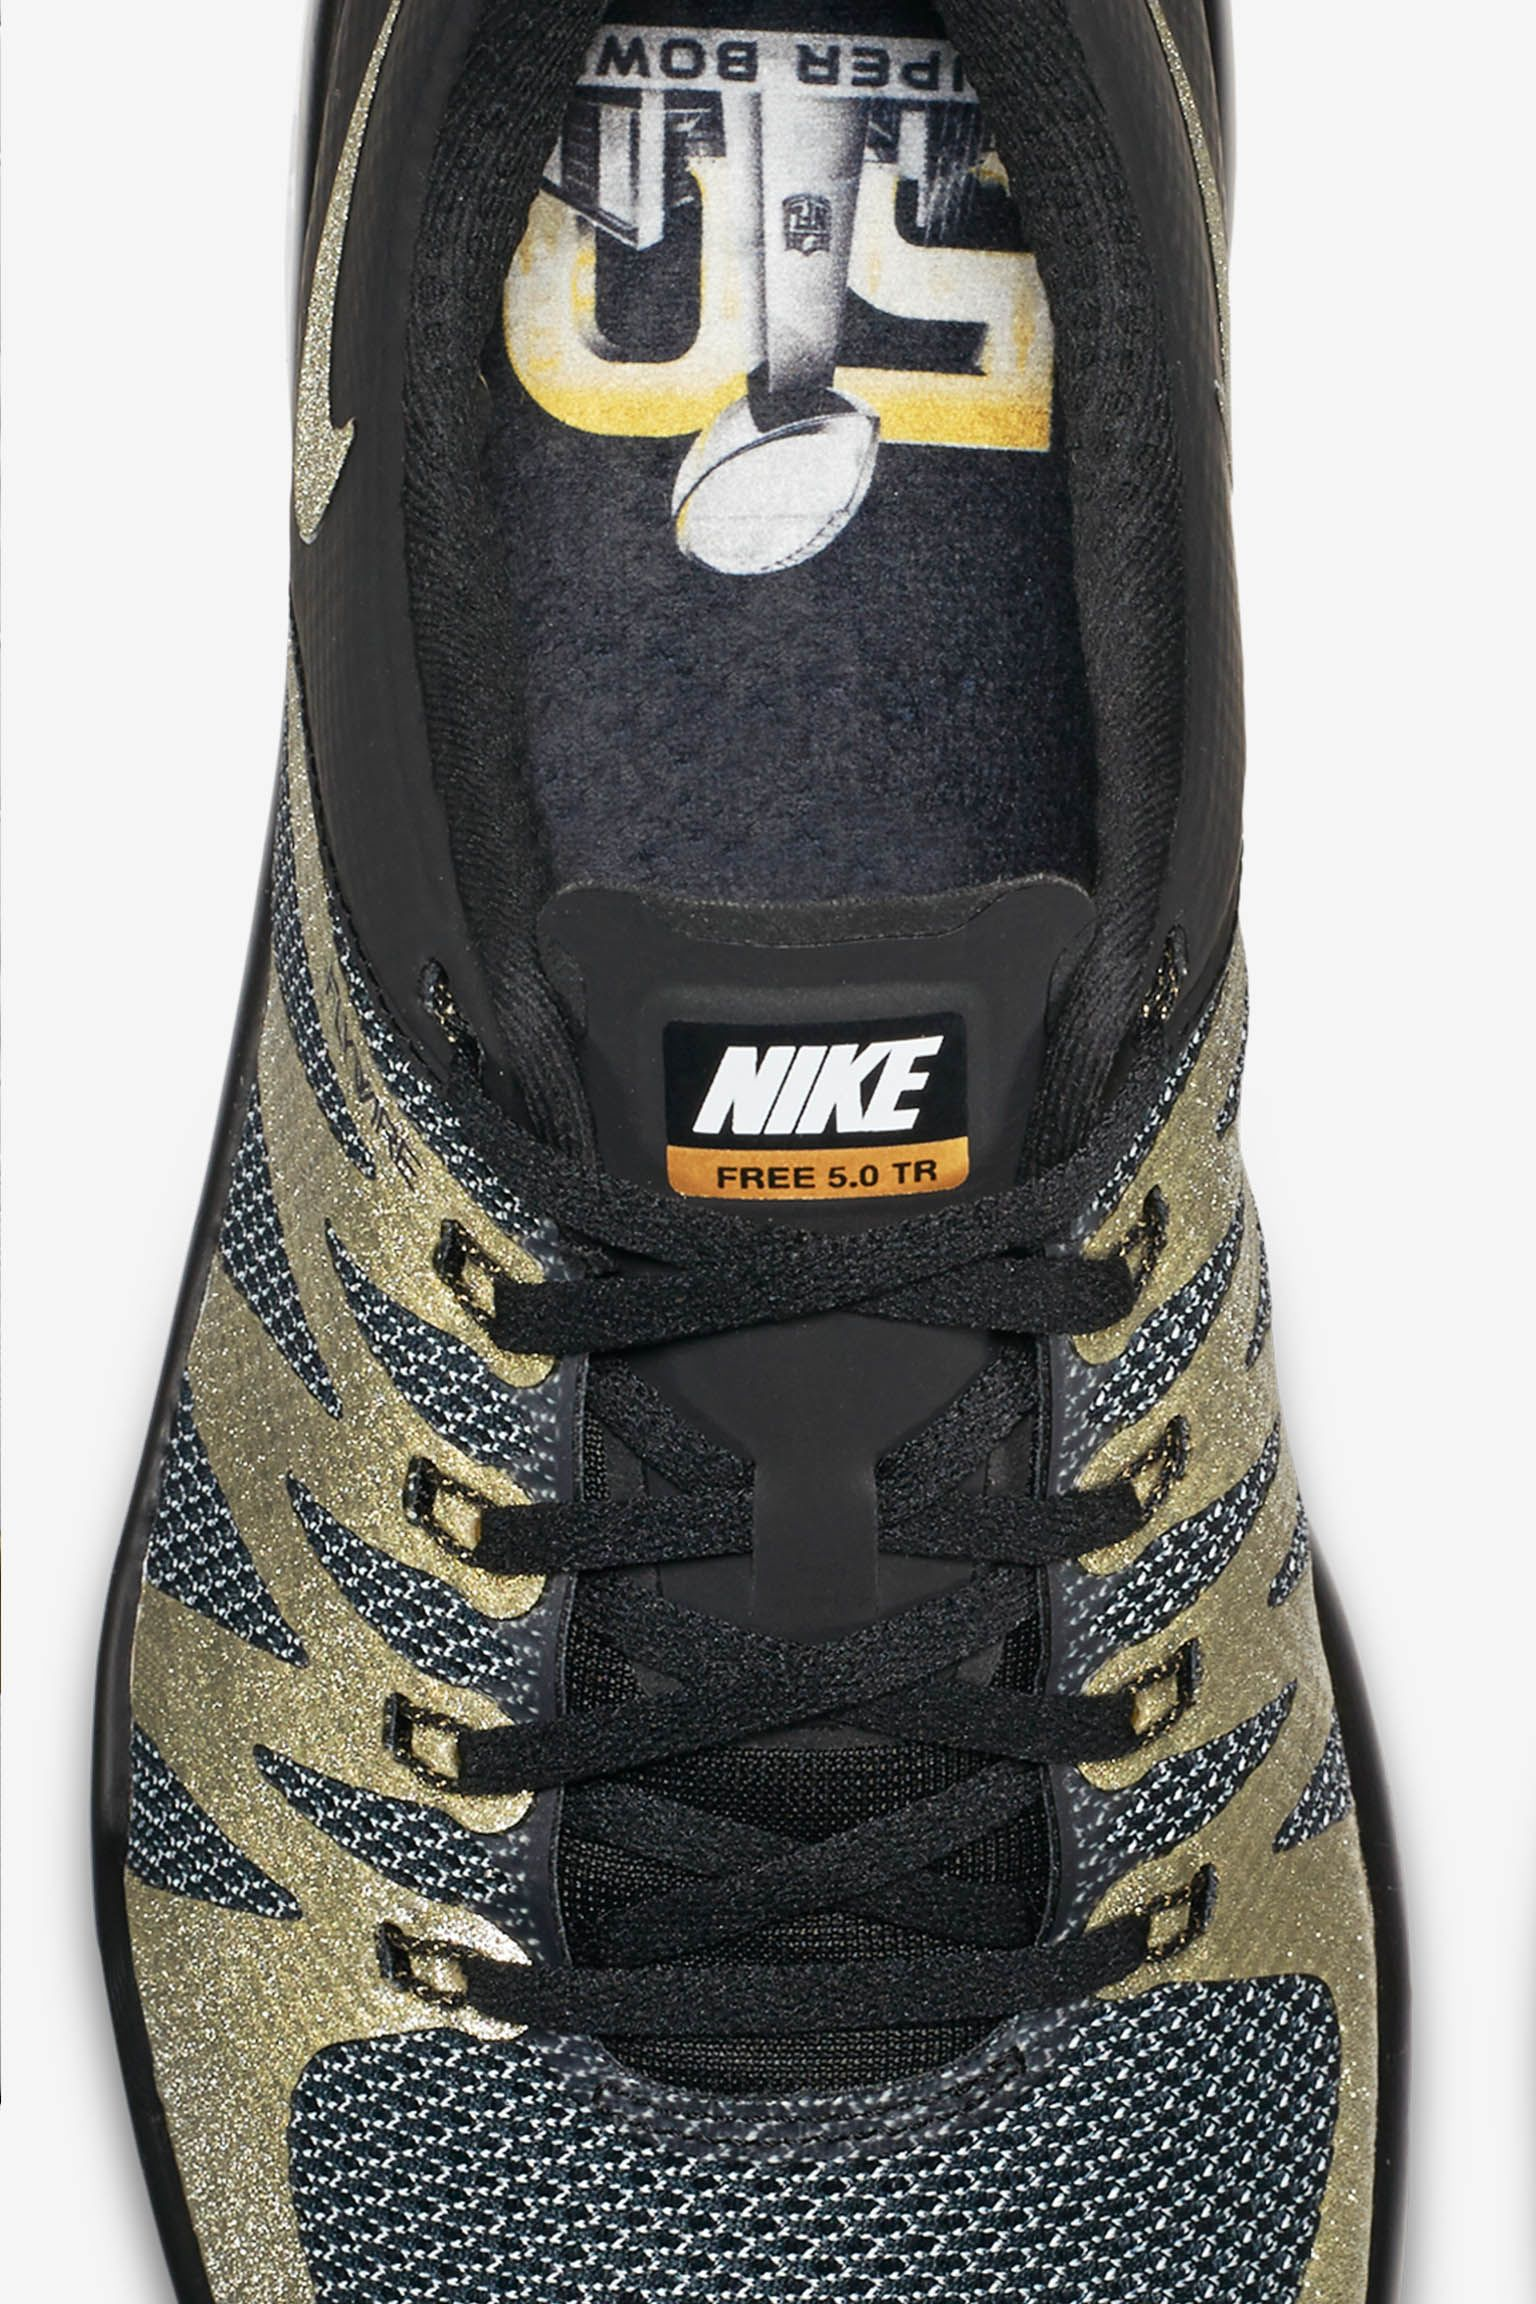 Nike SB50 Nike Free Trainer 5.0 V6 'Black & Metallic Gold'